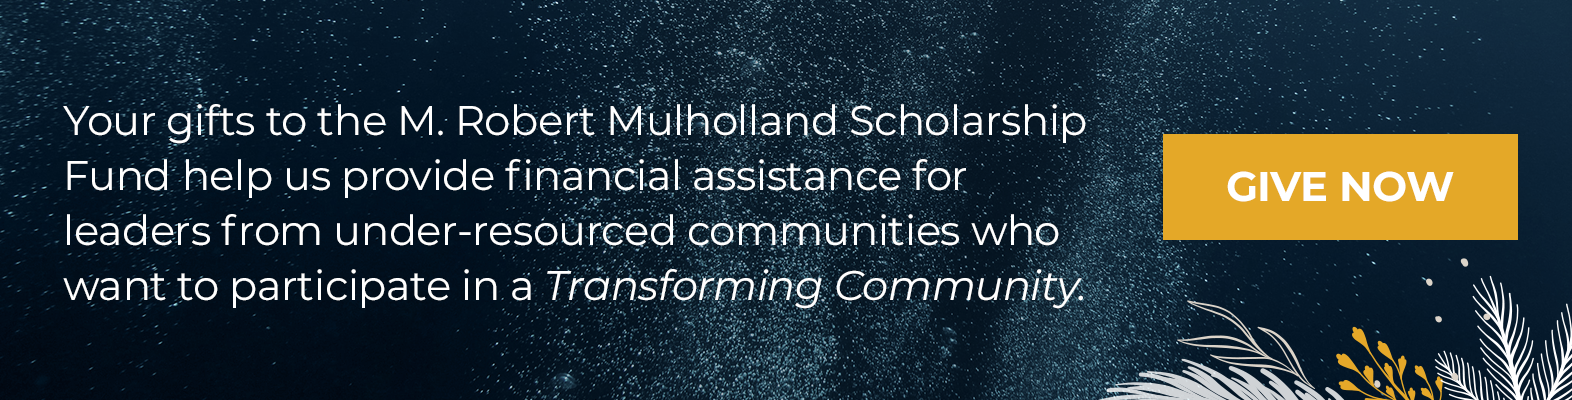 Your gifts to the Mulholland Scholarship fund help us provide financial assistance for leaders from under-resourced communities who want to participate in a Transforming Community.